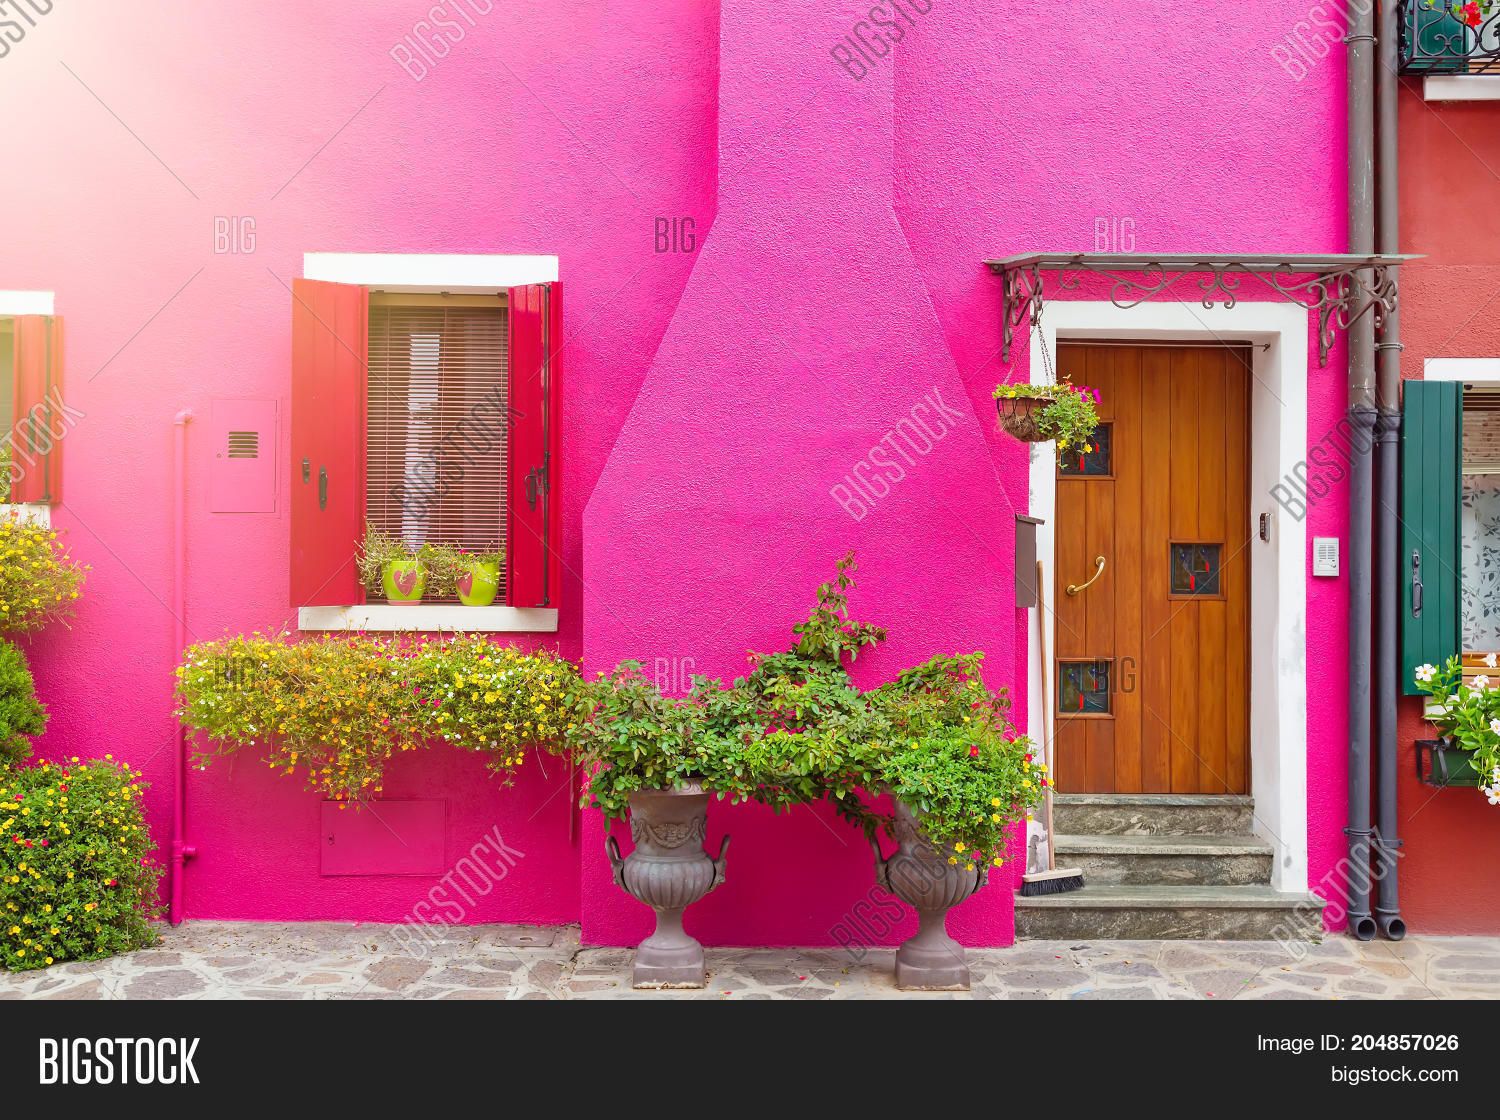 Pink House Flowers Image & Photo (Free Trial) | Bigstock